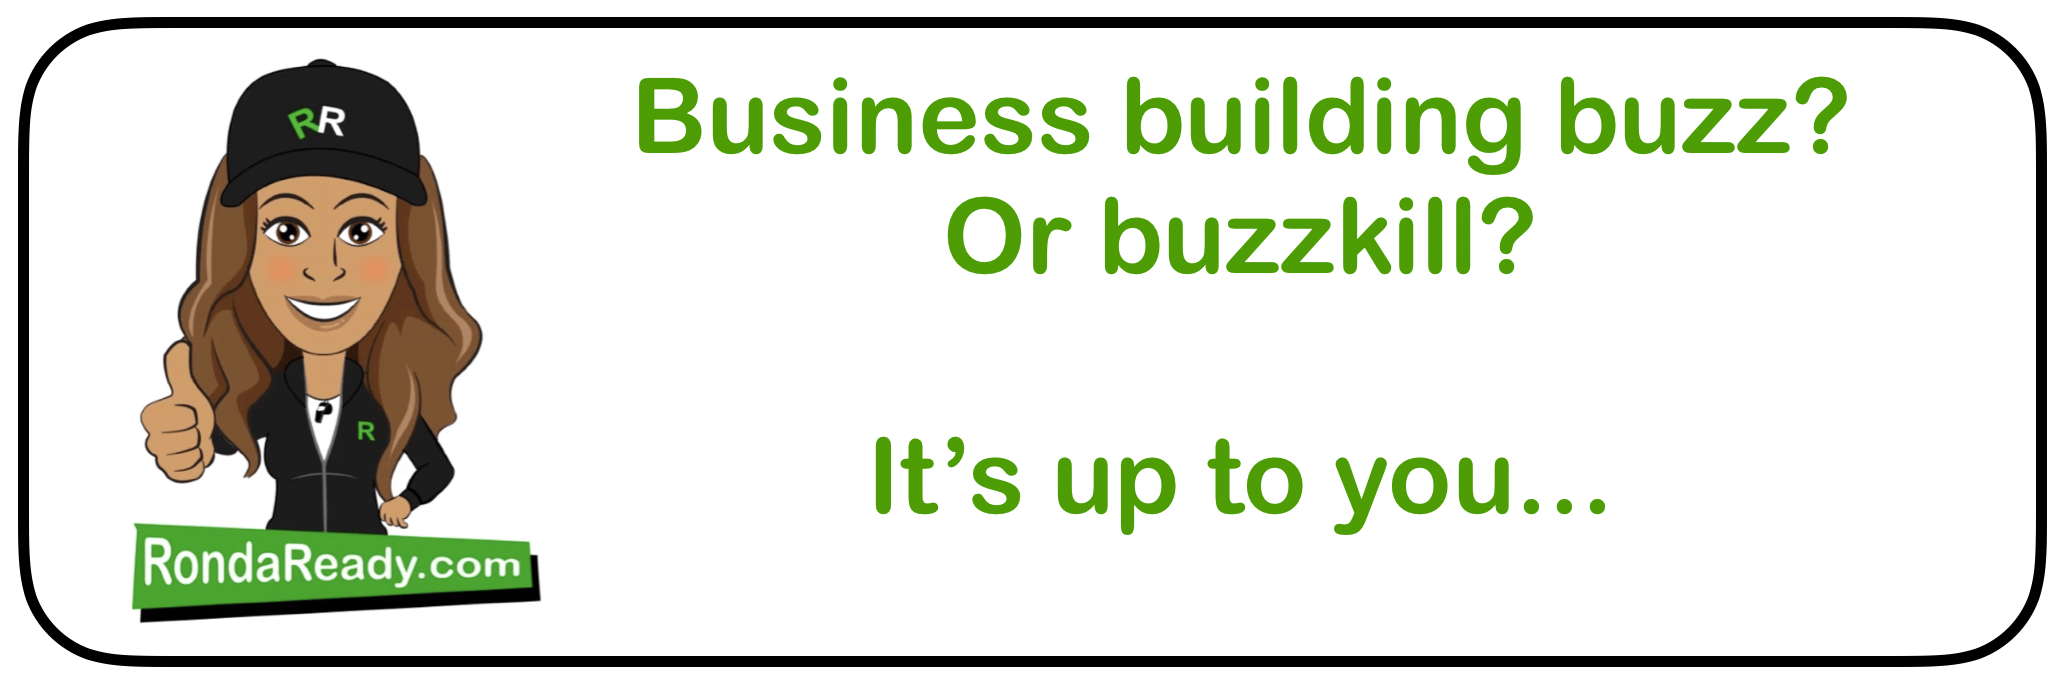 Business building buzz Or buzzkill?